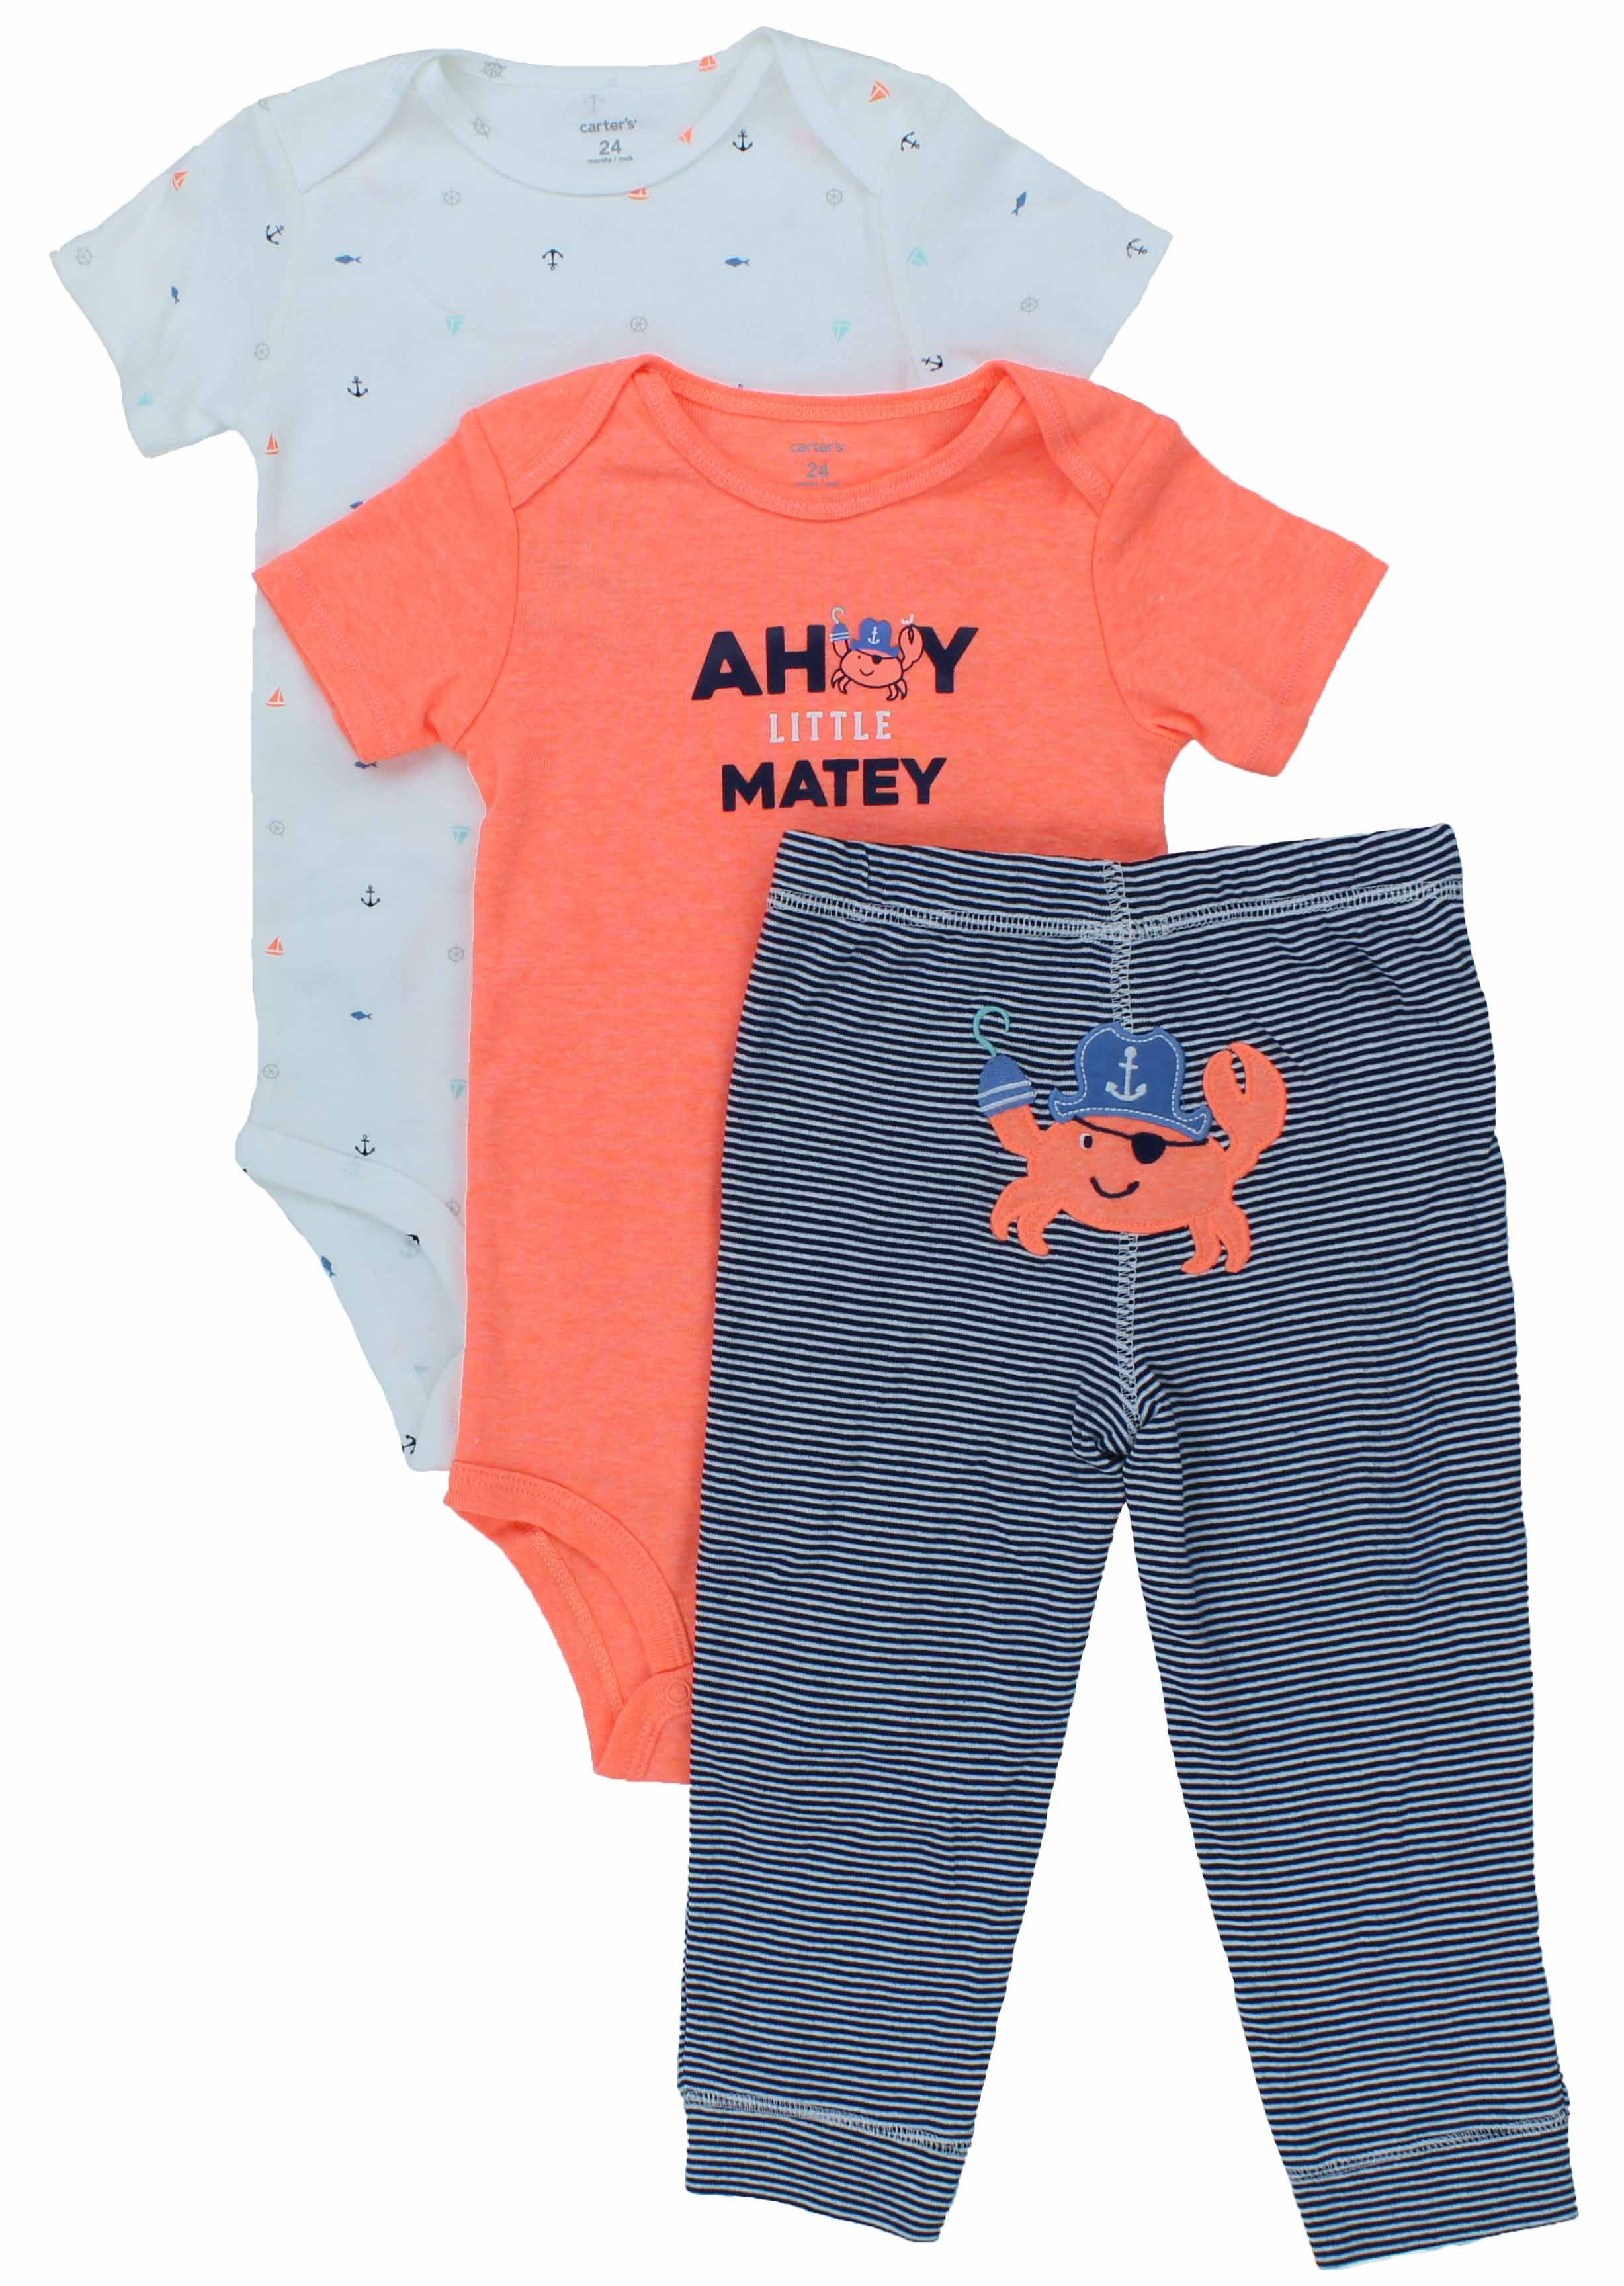 Carter s Baby Boy s 3 Piece Matching Outfit Set 2 sies 1 Pant